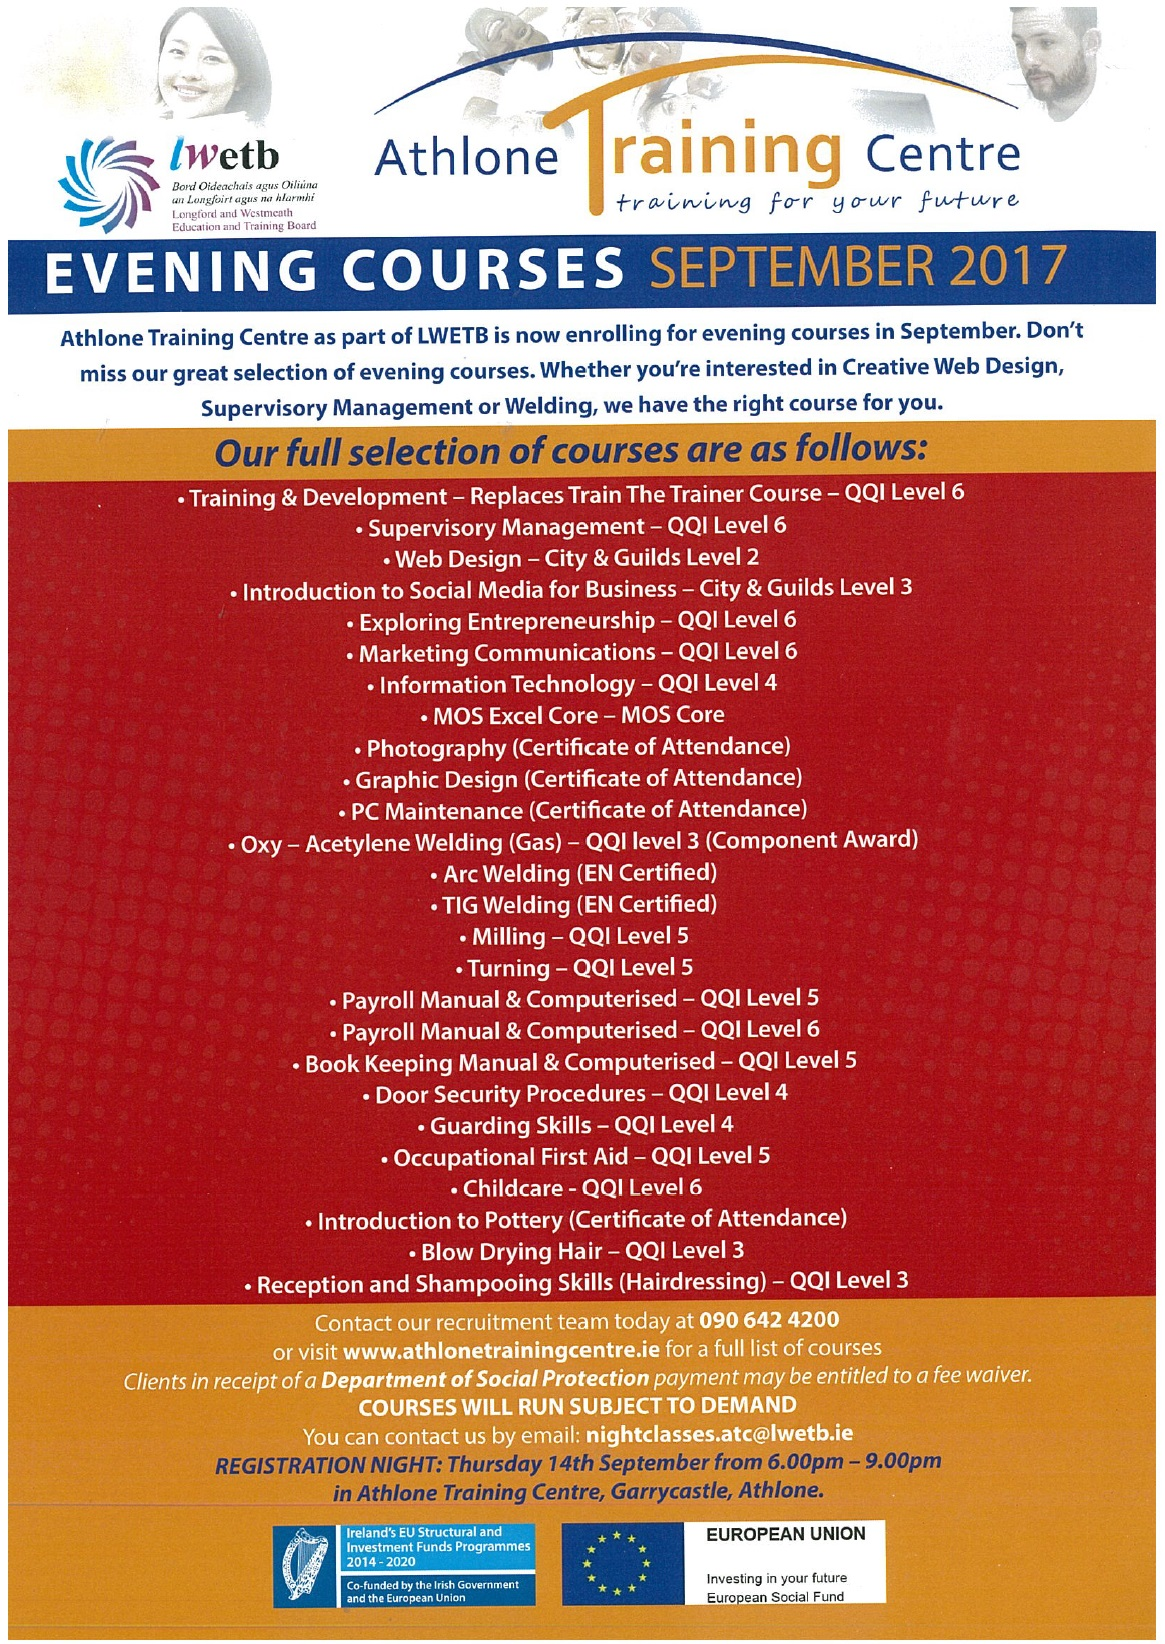 Athlone Even Courses 2